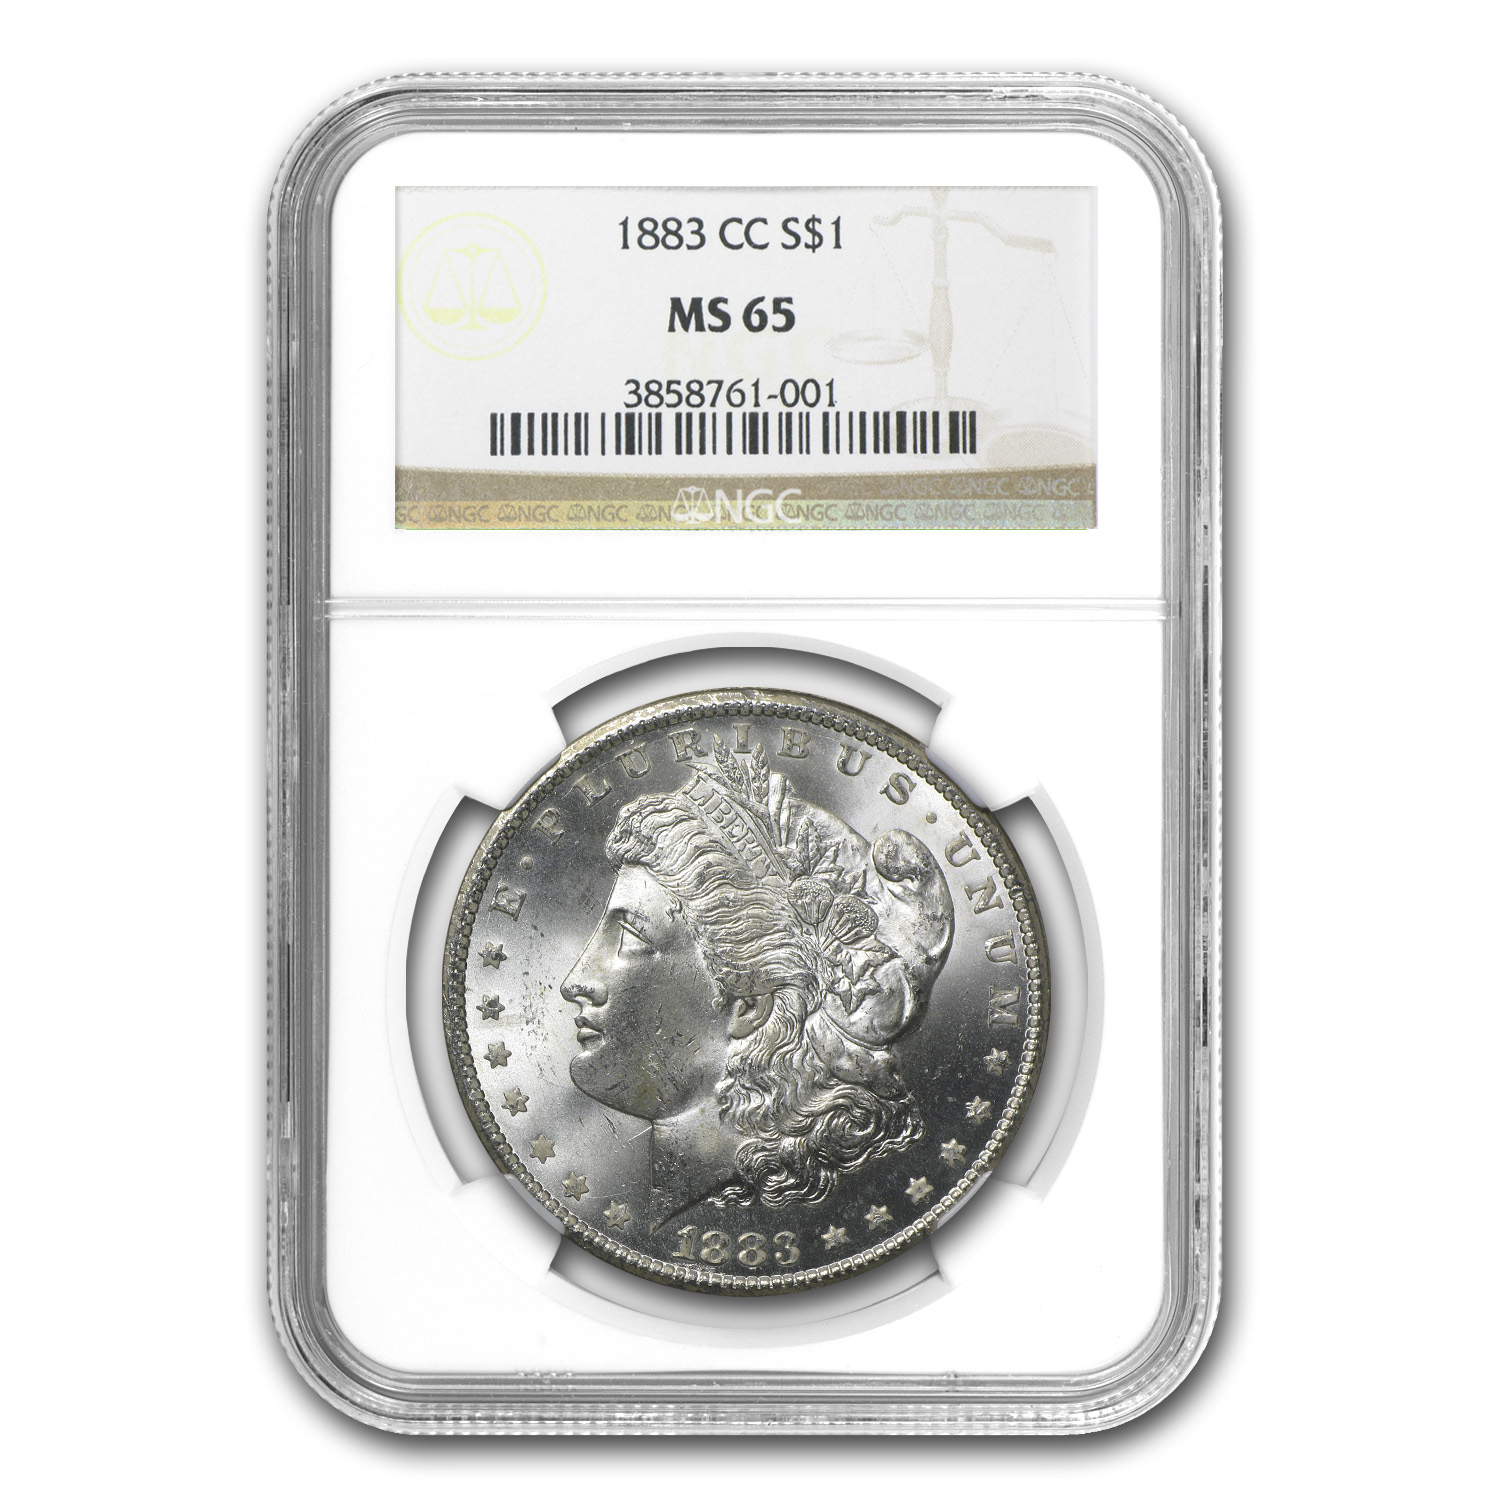 1882-1884-CC Morgan Dollars - MS-65 NGC - Carson City